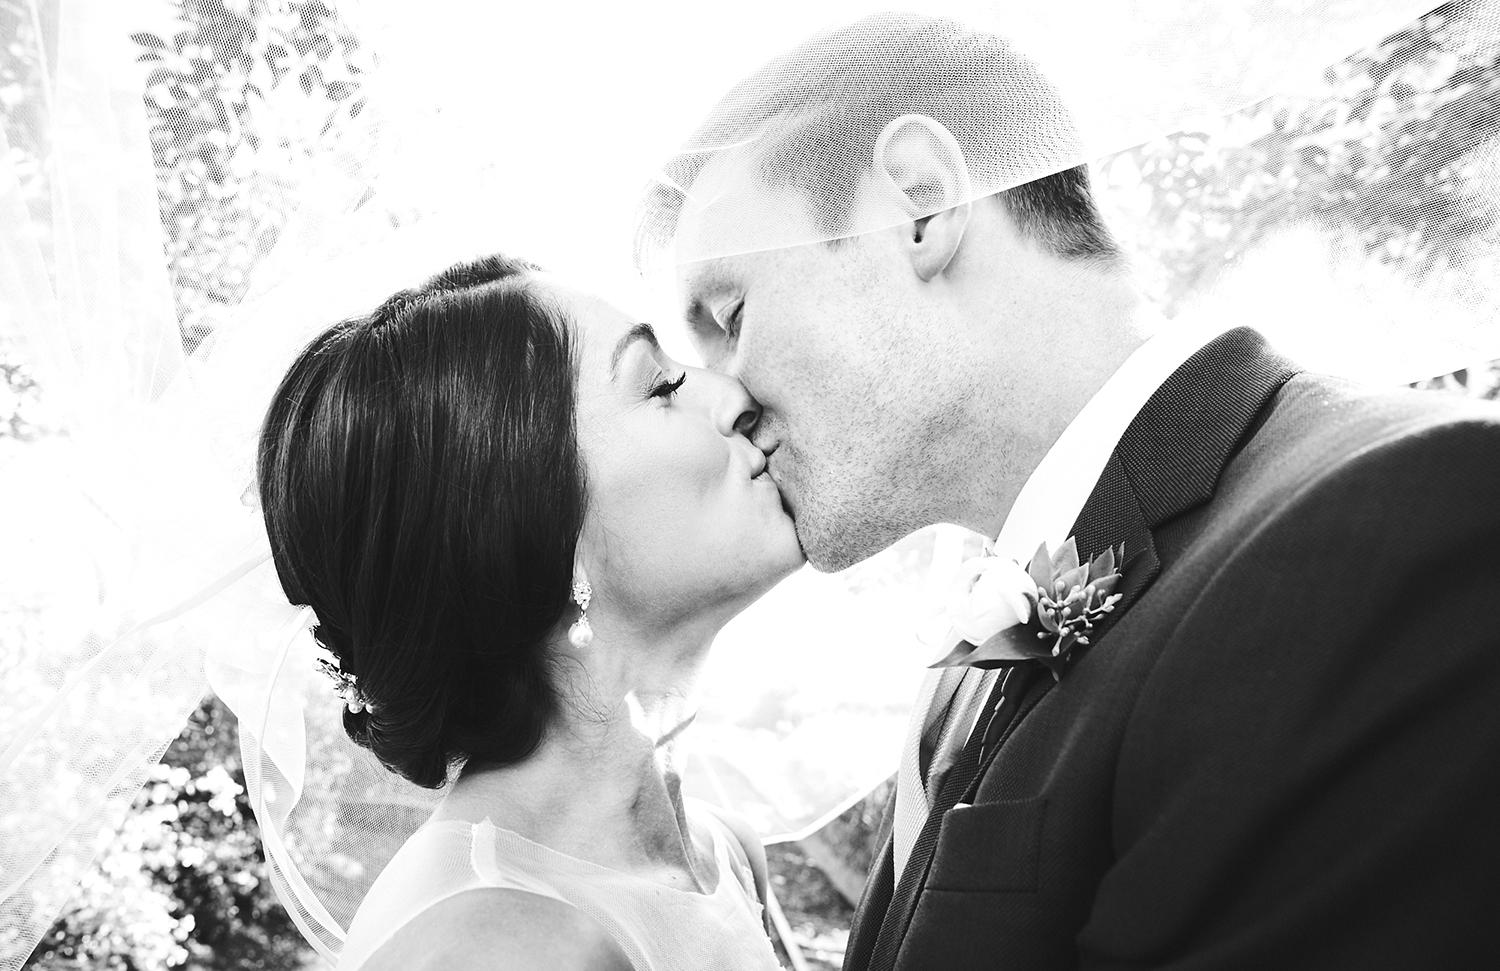 170805_PowerPlantProductionsWeddingPhotography_PAWeddingPhotographer_By_BriJohnsonWeddings_0063.jpg